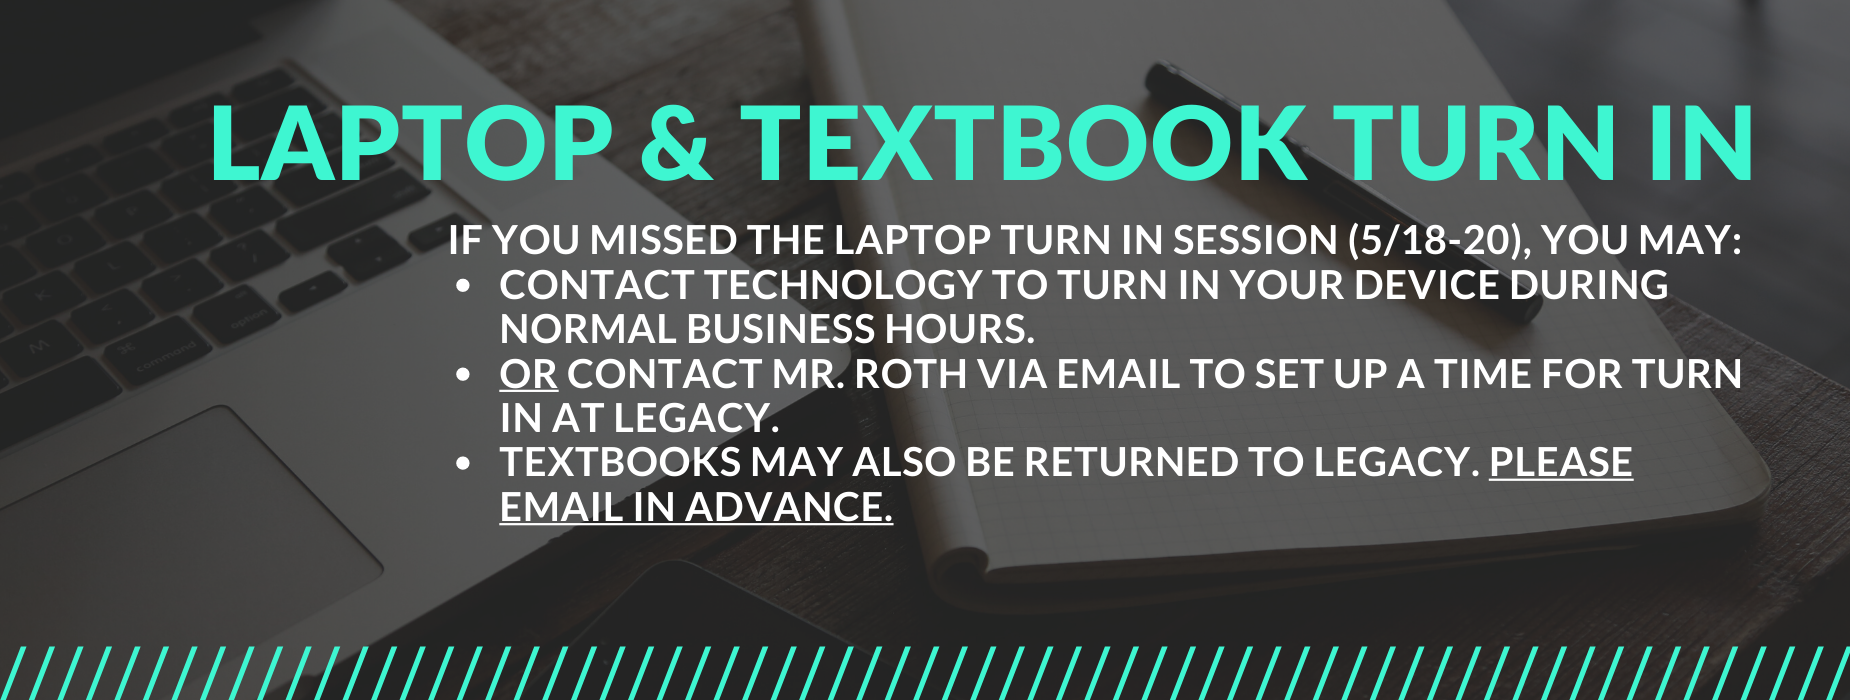 Laptop & Textbook Return - If you missed the drop off days, please contact Technology or email Mr. Roth.